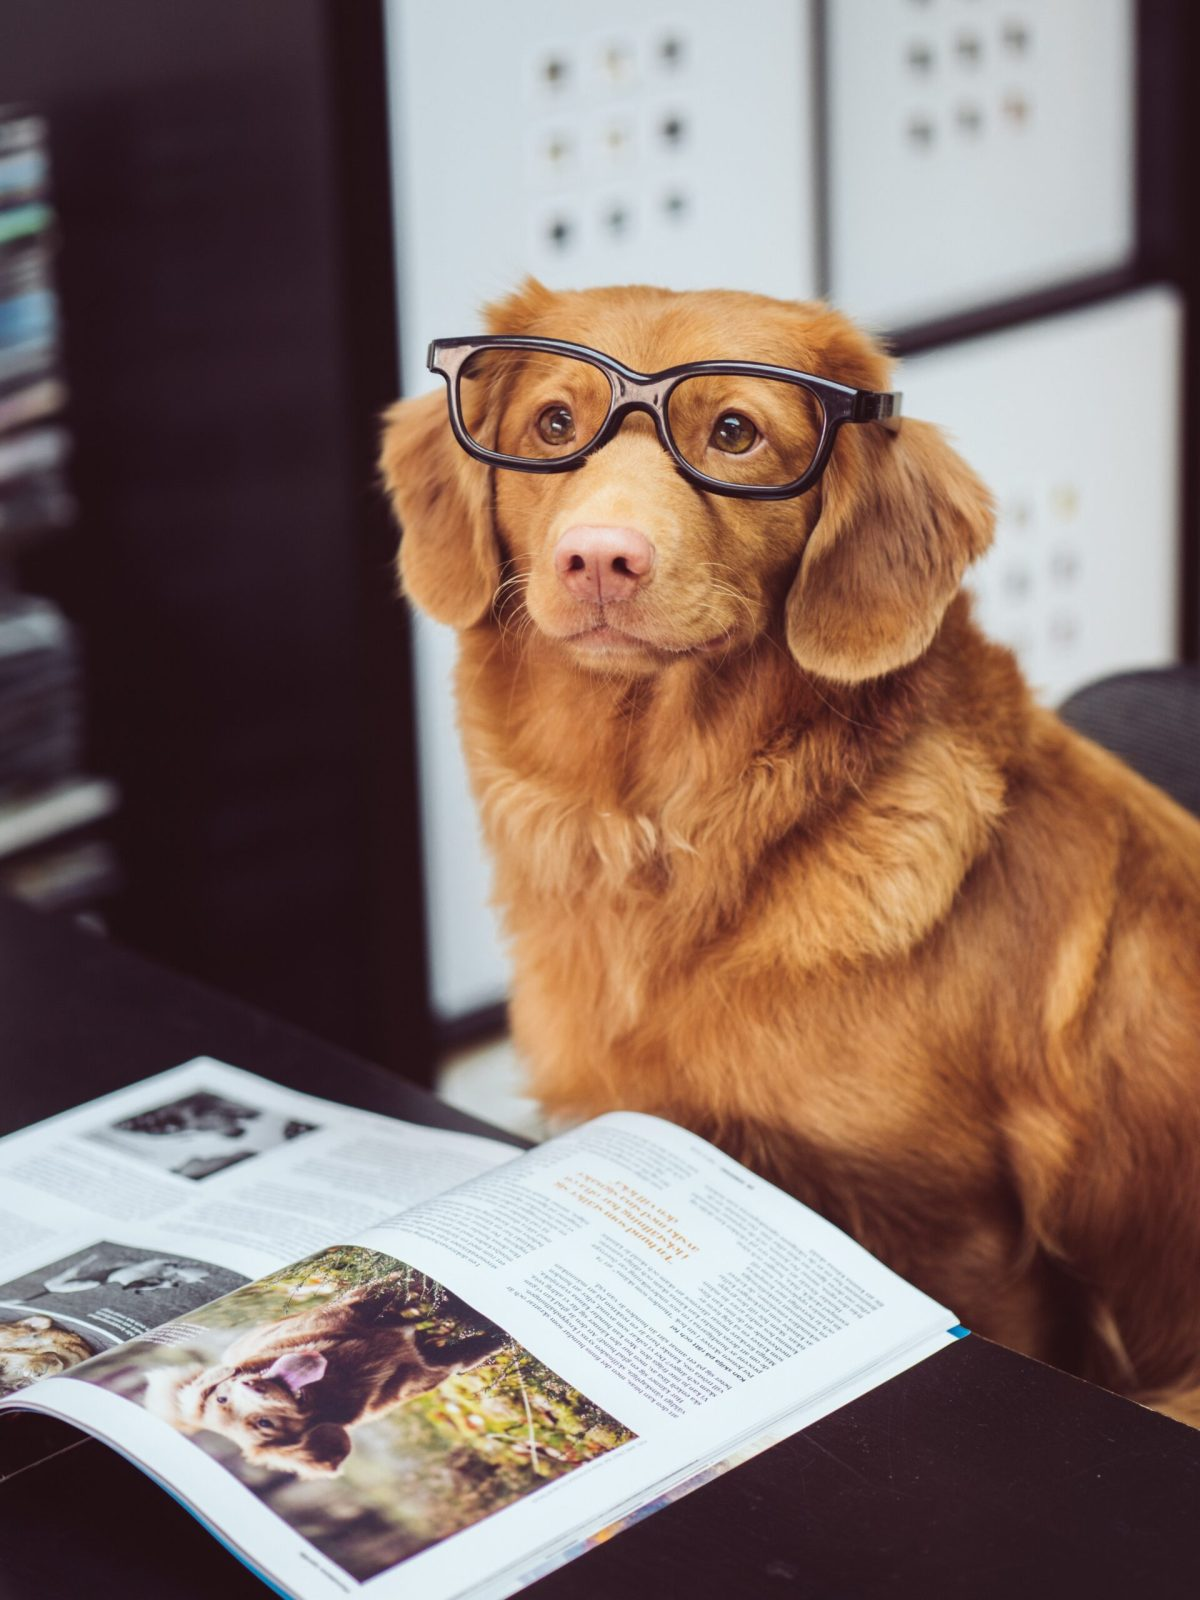 Dog Reading a book about Dogs